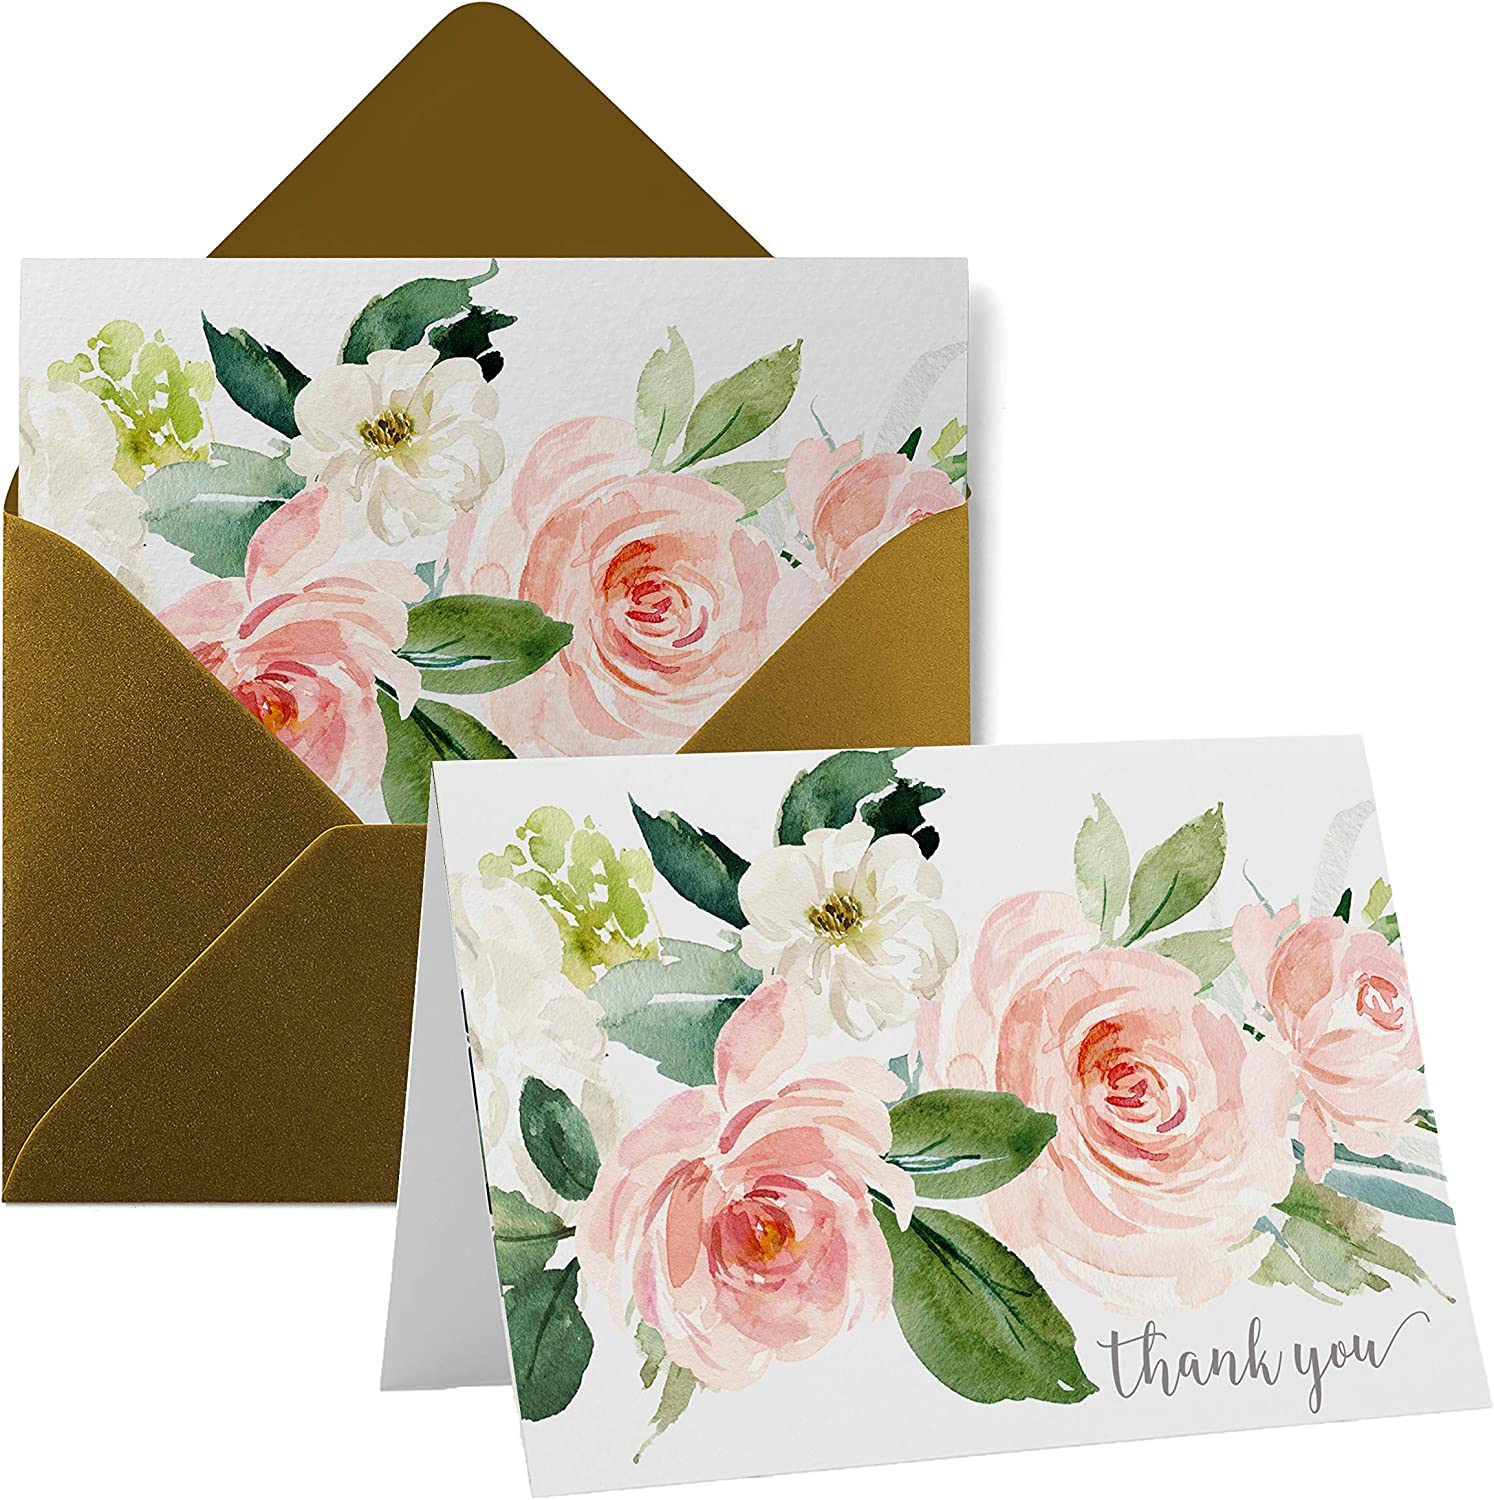 Graceful Floral Thank You Cards (20 Pack) Wedding – Bridal Shower – Engagement – Birthday - Graduation – Greenery Style - Everyday Folded Stationery Set with Gold Envelopes